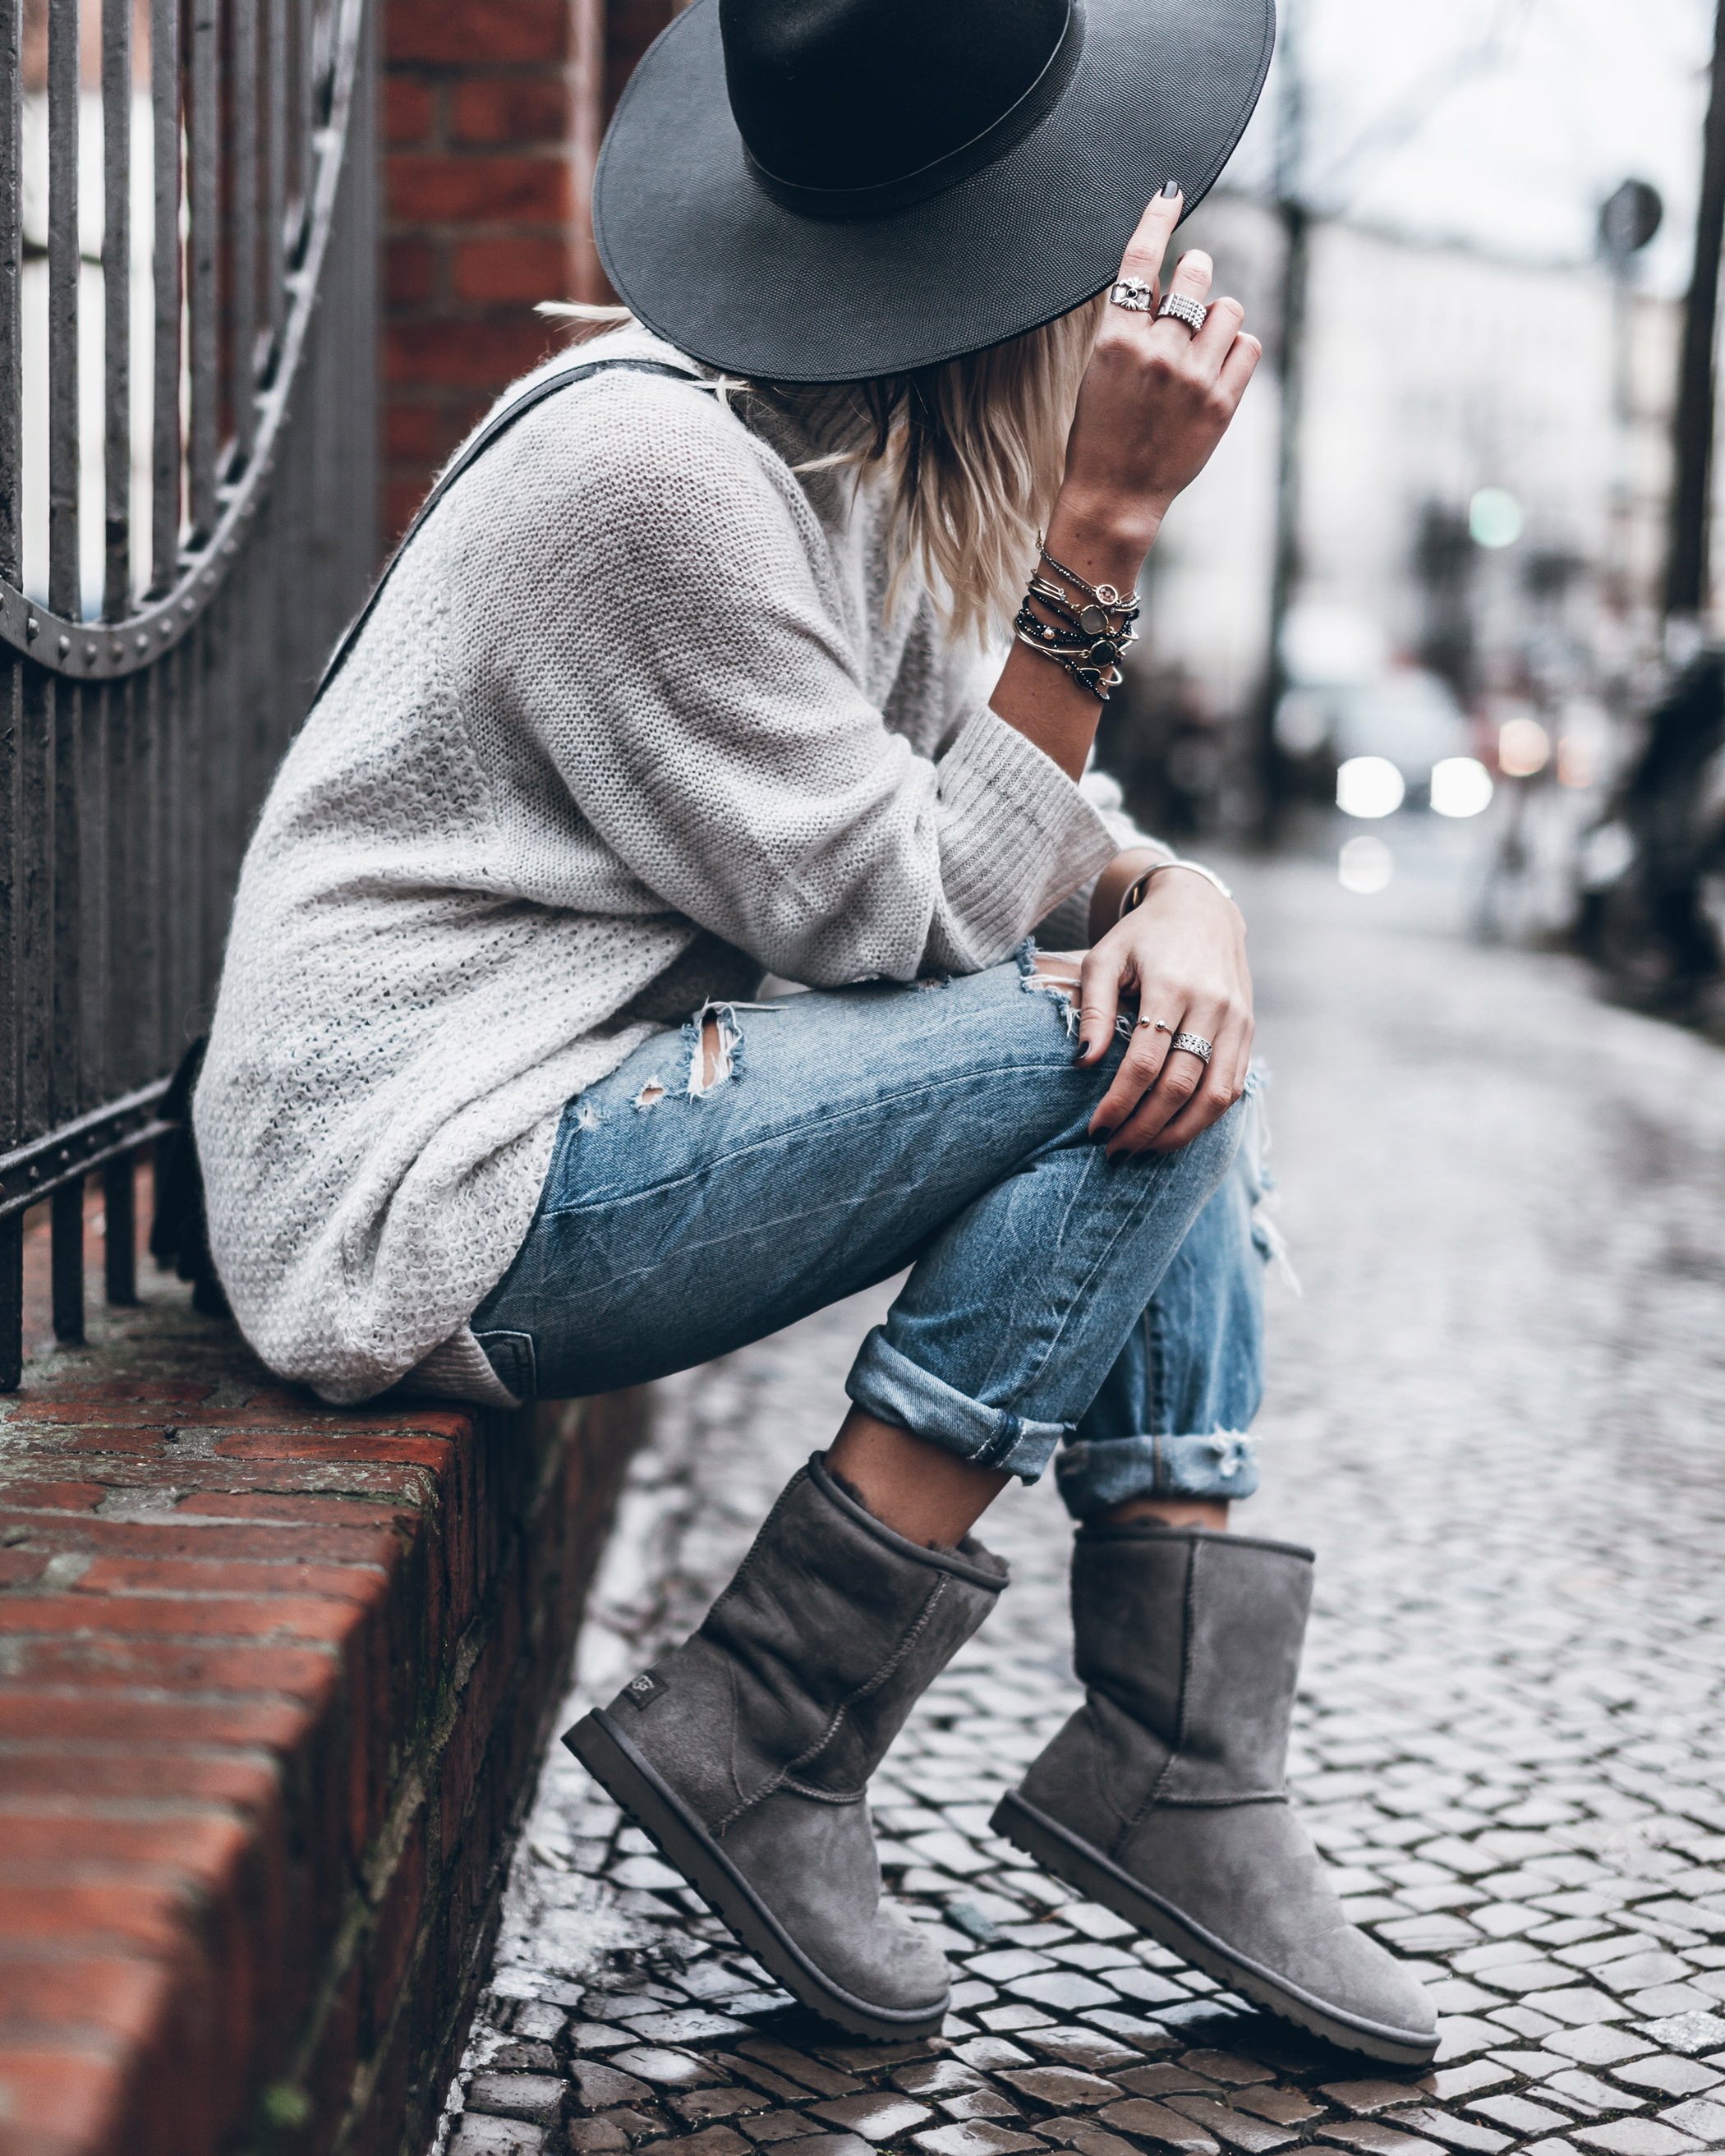 Jacqueline Mikuta is bringing back the Ugg trend, wearing a classic pair of ankle high boots with rolled jeans, a cable knit sweater, and a wide brimmed fedora hat. This cosy and homely look is ideal for colder winter days! Shoes: Ugg Australia.